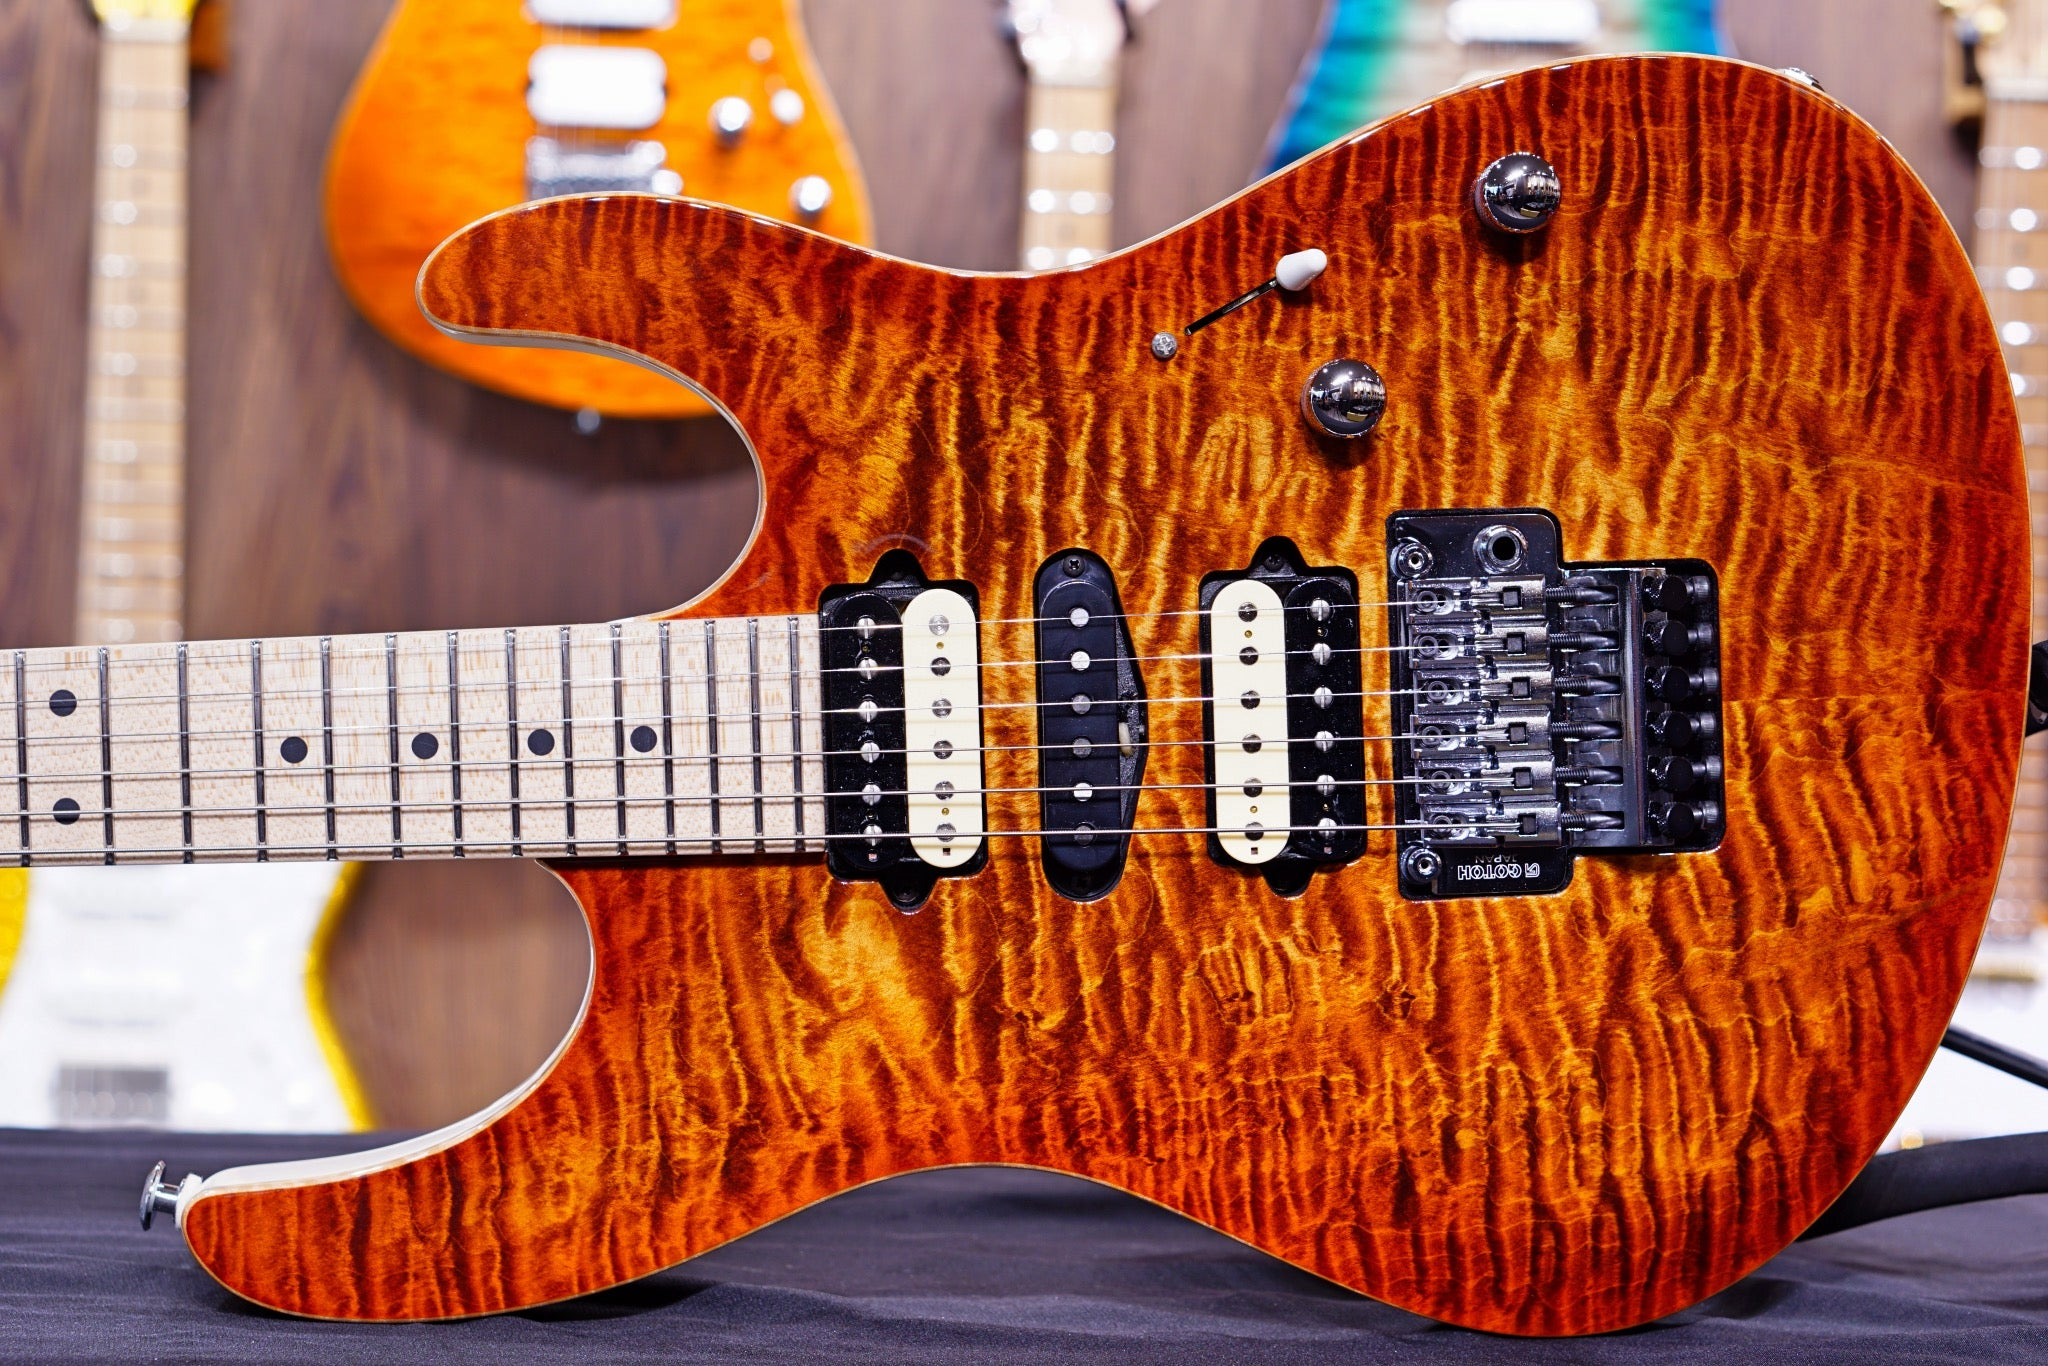 Suhr modern custom copperhead w white back JS8T5F